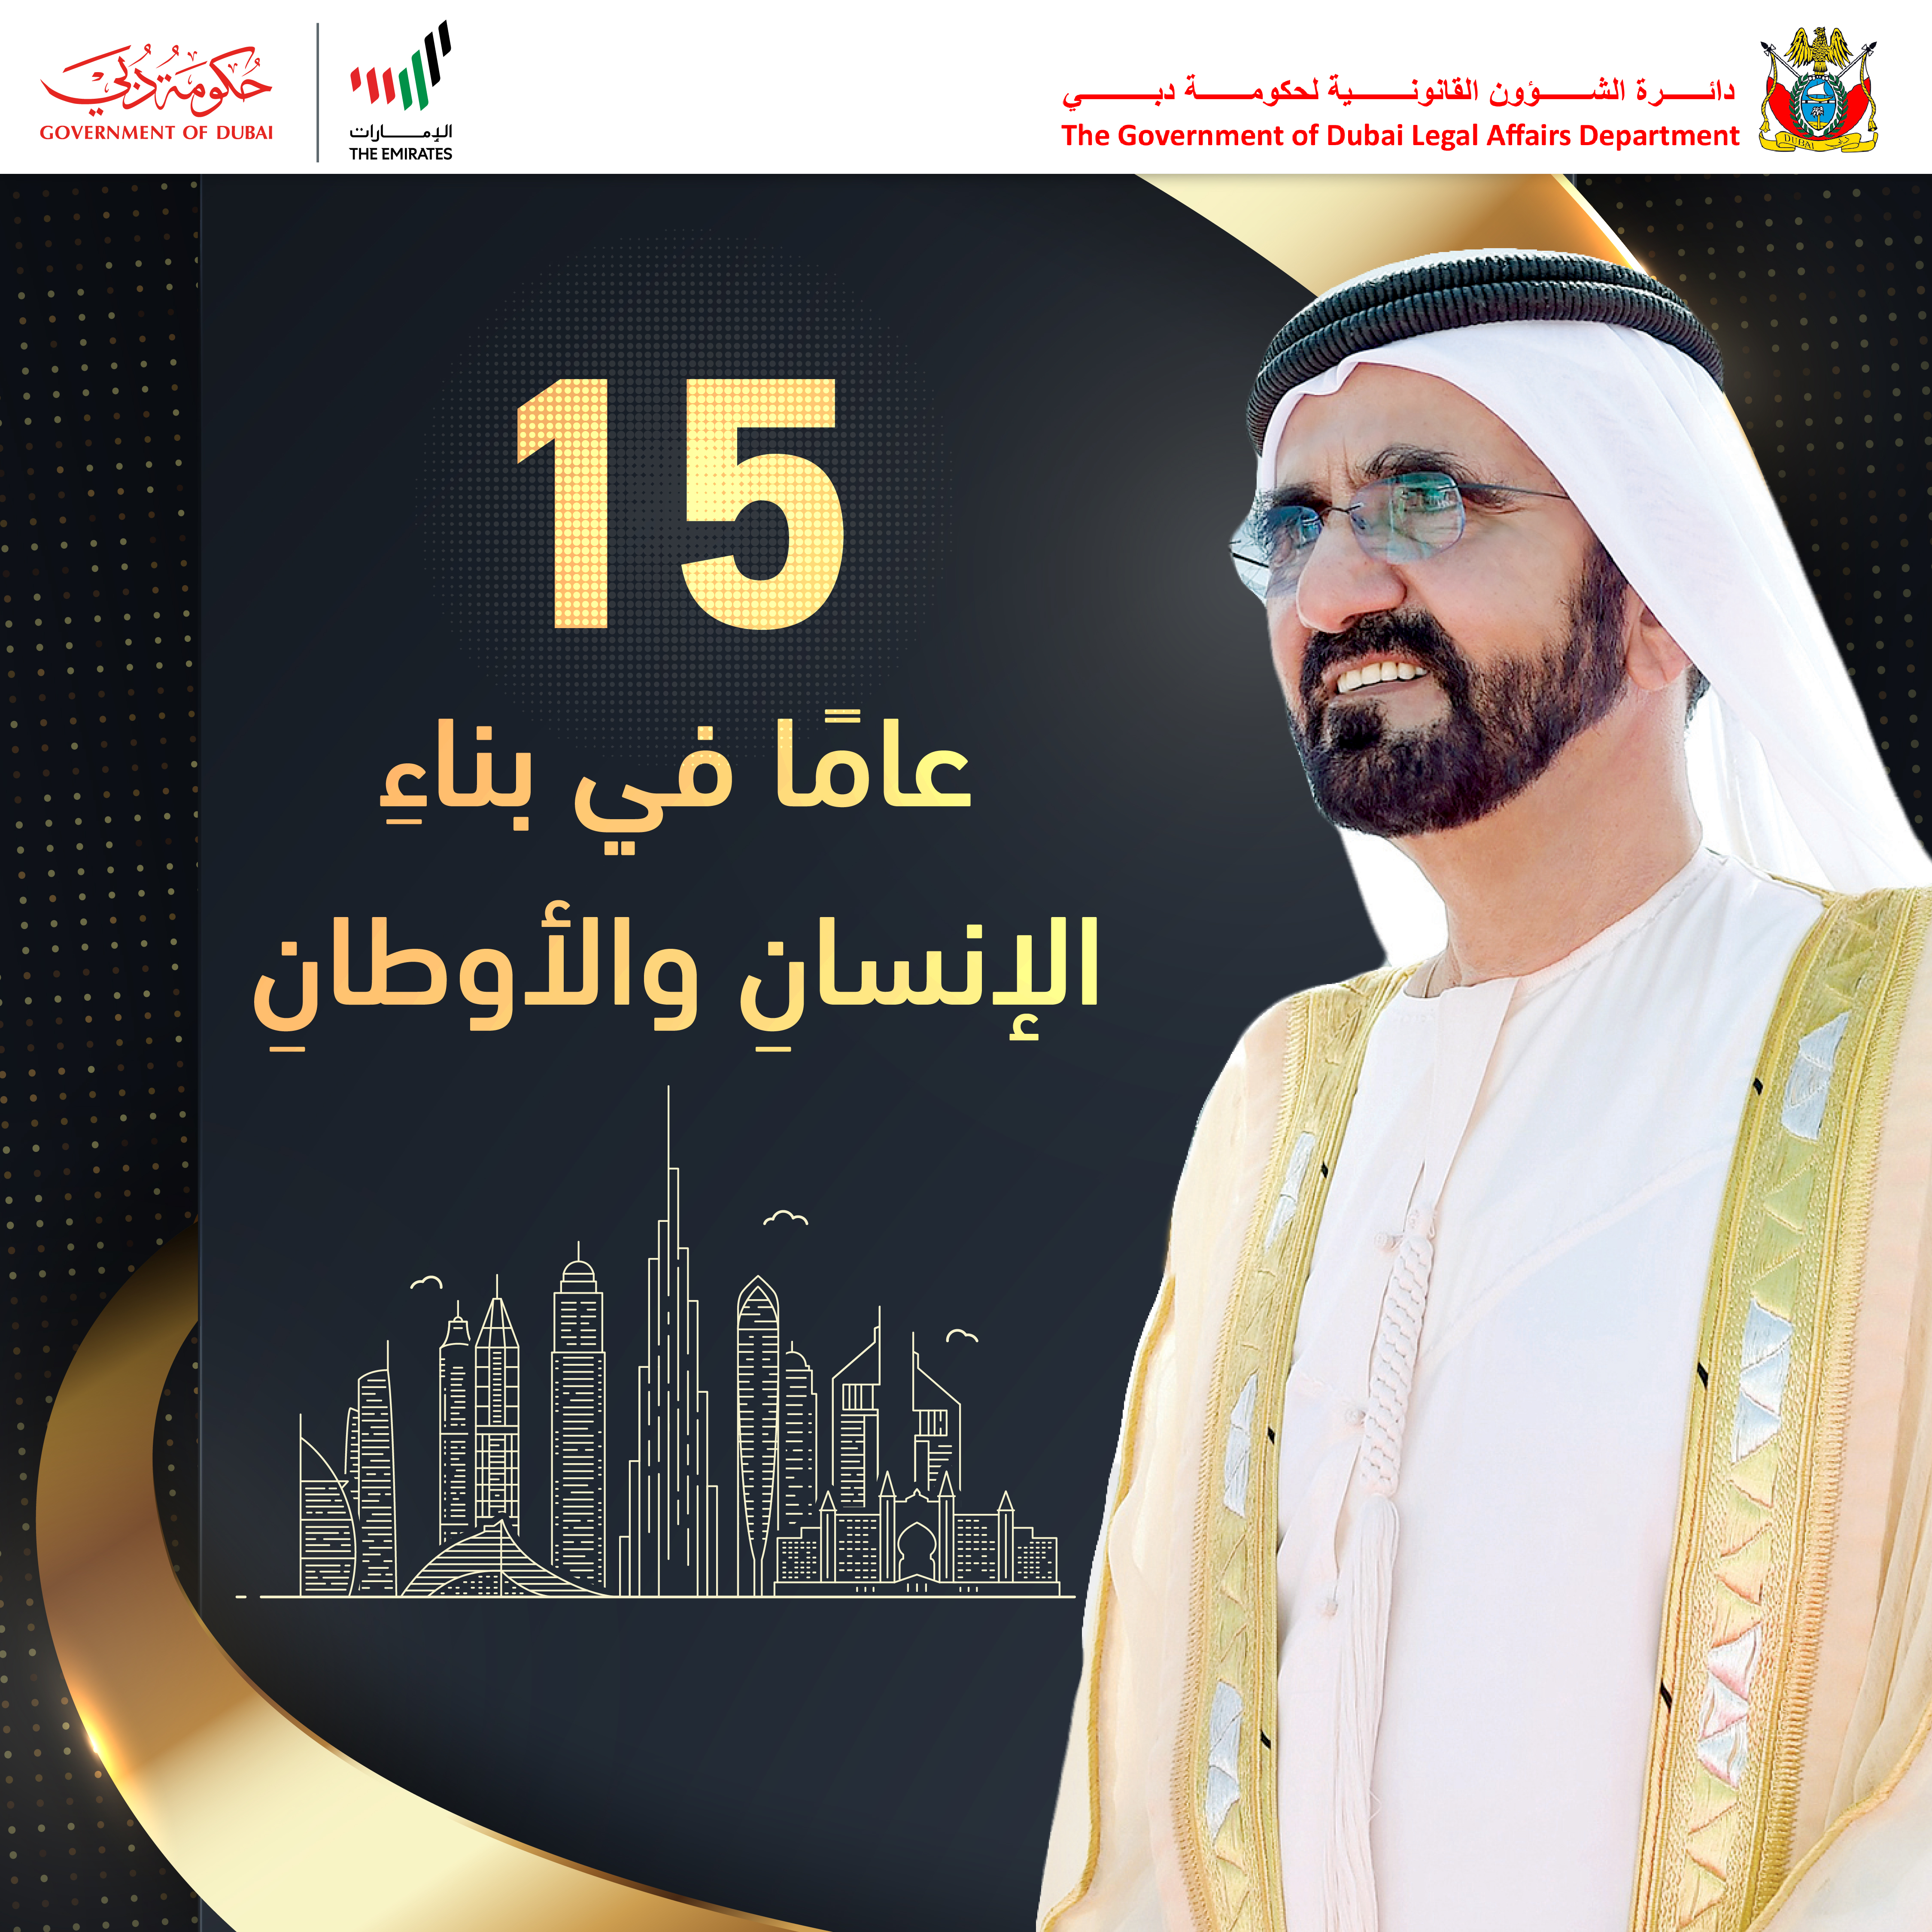 Director General of the Government of Dubai Legal Affairs Department:  The Message of Mohammed Bin Rashid is a Holistic Vision in the Development of Man and Nation